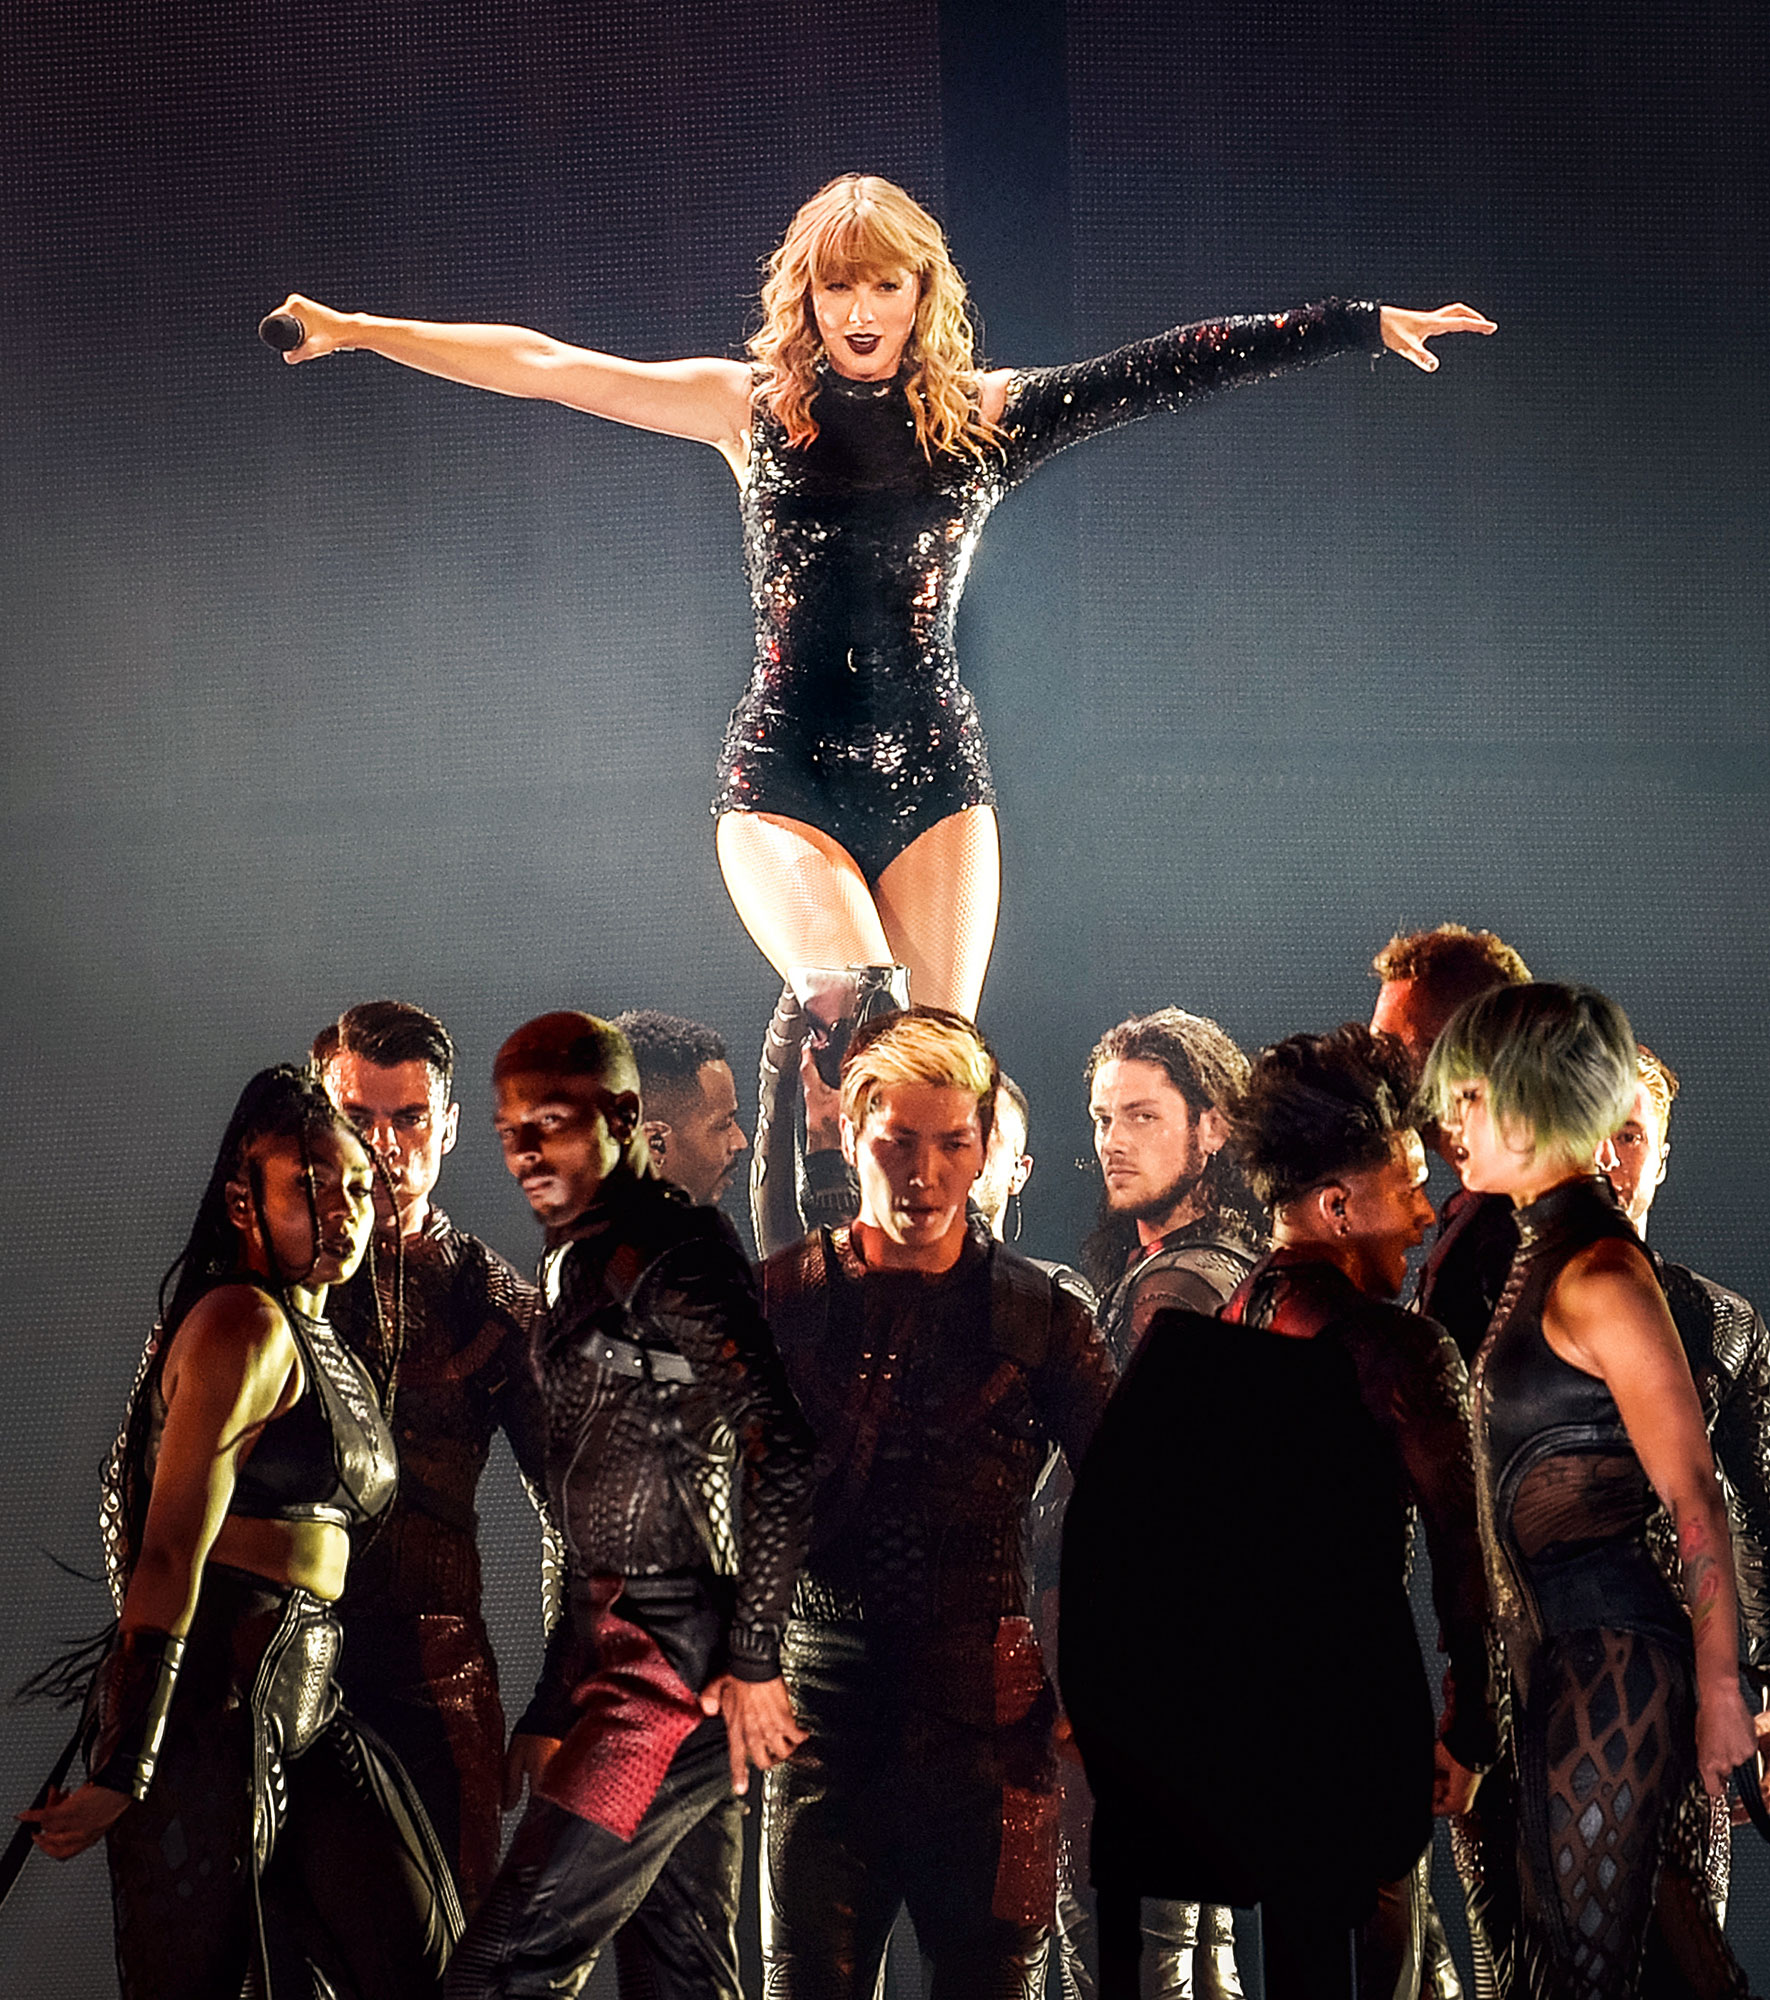 Taylor Swift Reputation Netflix New Years Eve Special